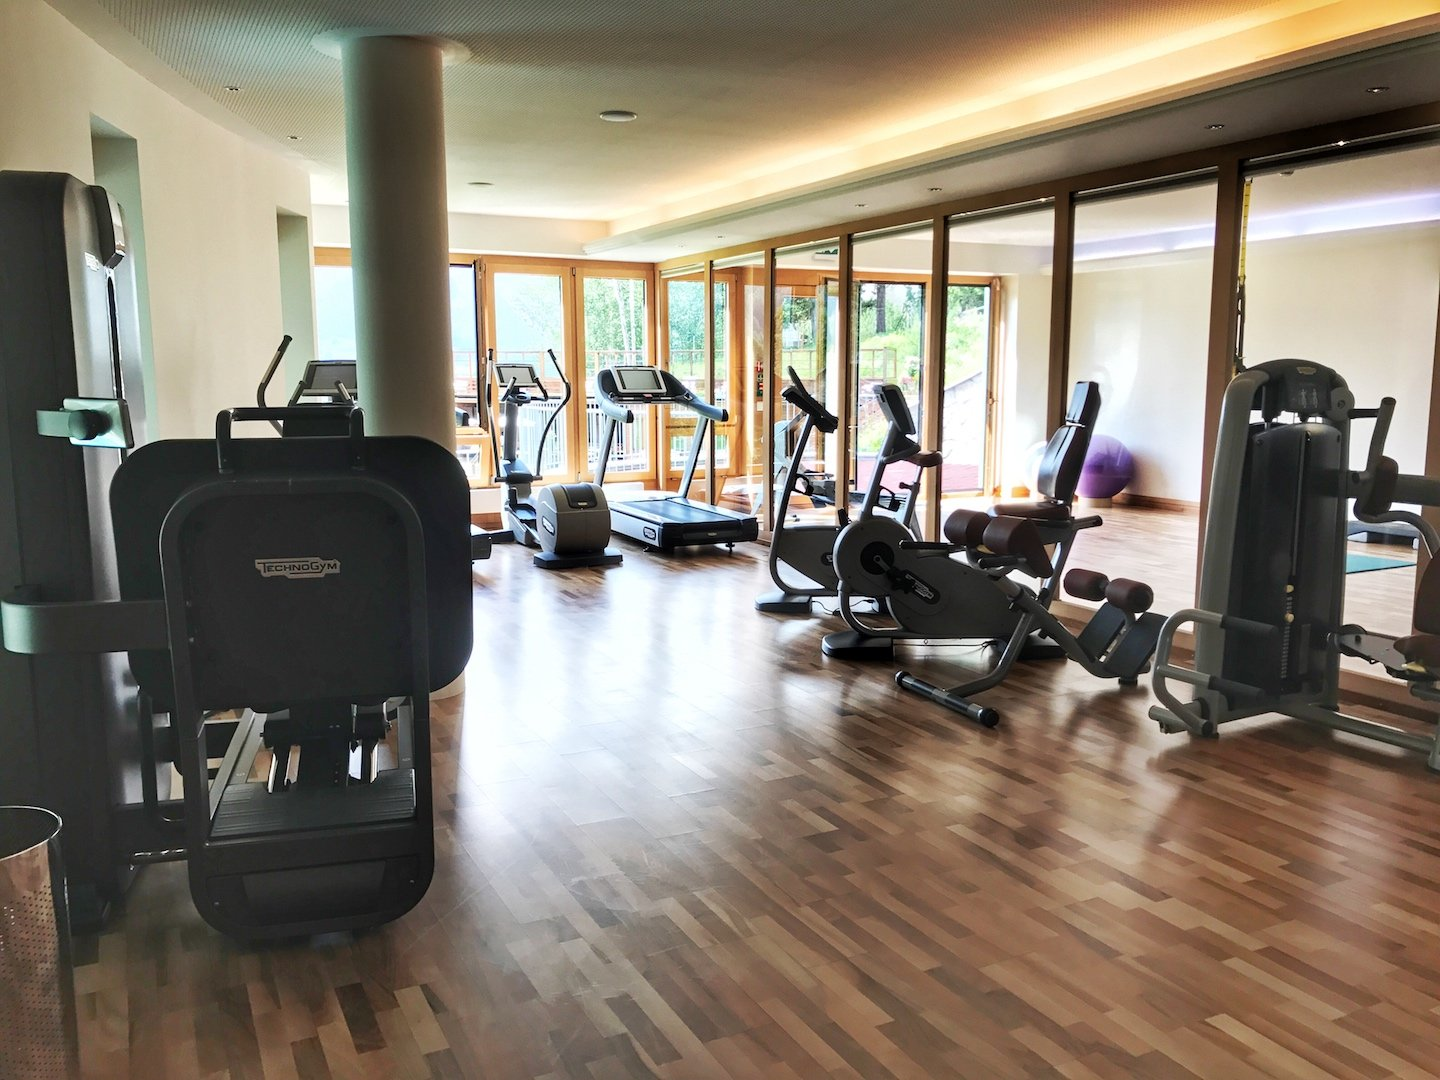 Grand hotel Kronenhof - fitness centre